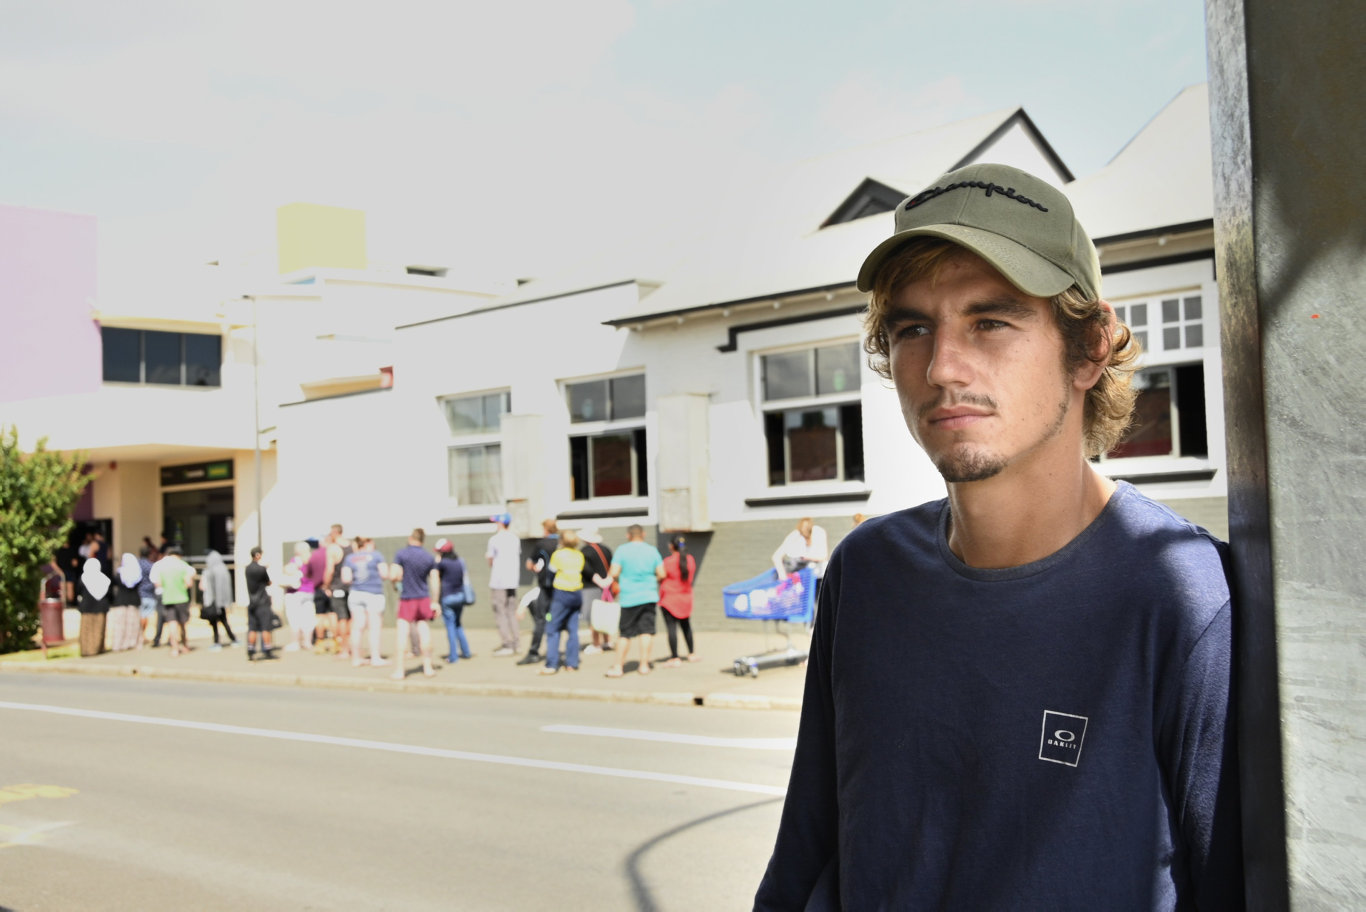 Lachlan Haywood moved to Toowoomba from Bundaberg but the job he was hired for no longer available due to coronavirus. Crowds outside Centrelink office. Picture: Bev Lacey